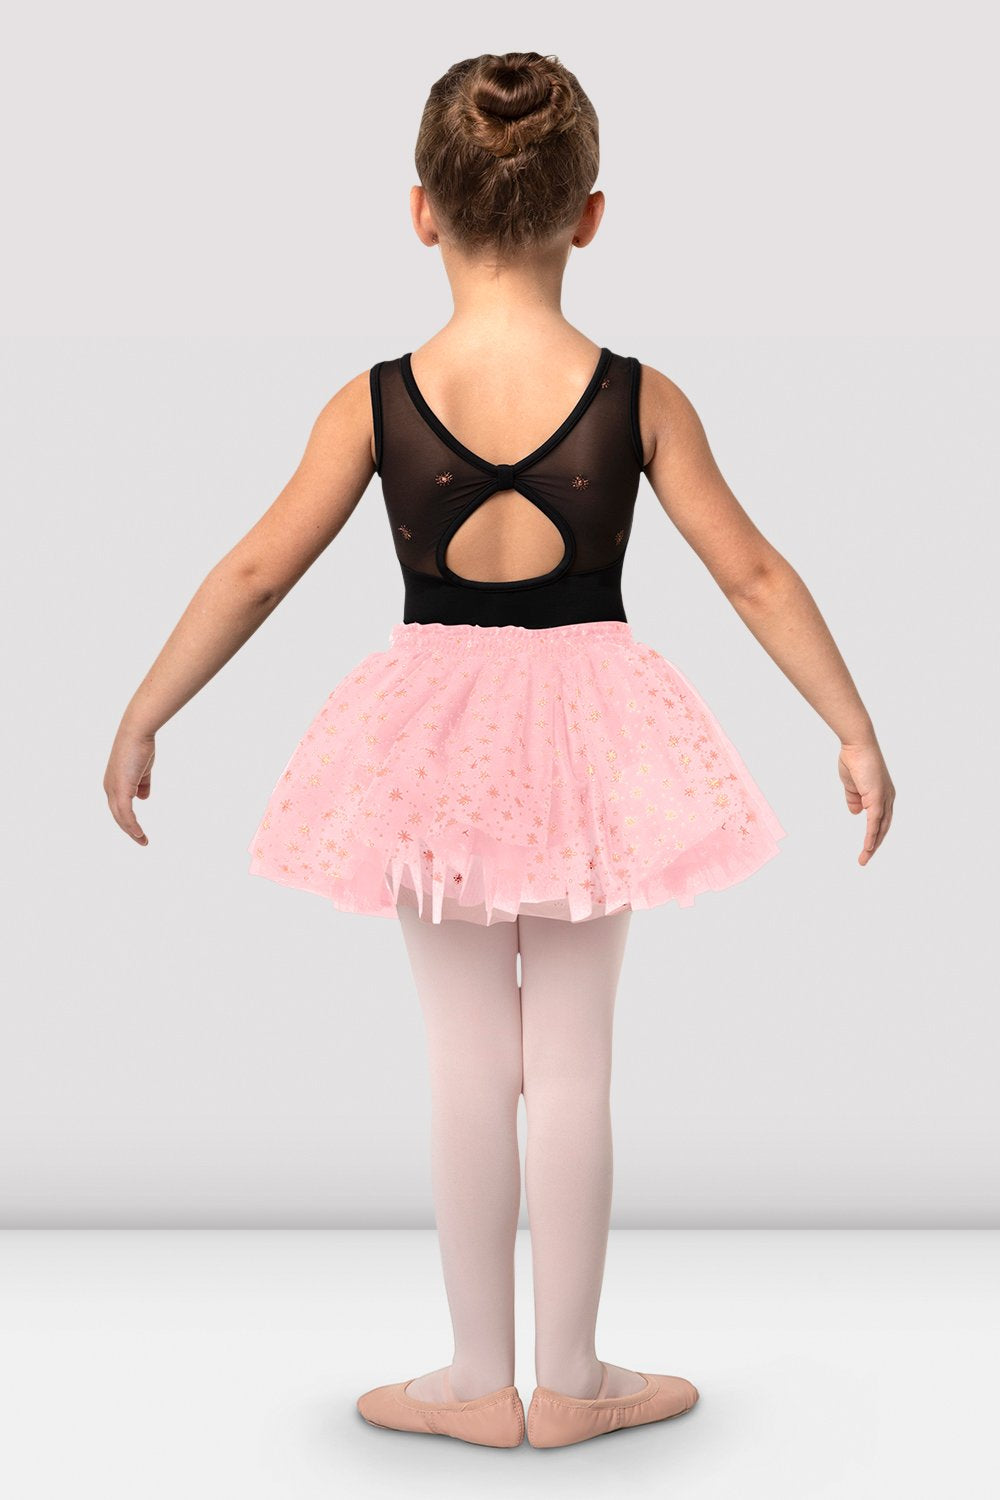 Girls Rosemary Glitter Tutu Skirt - BLOCH US